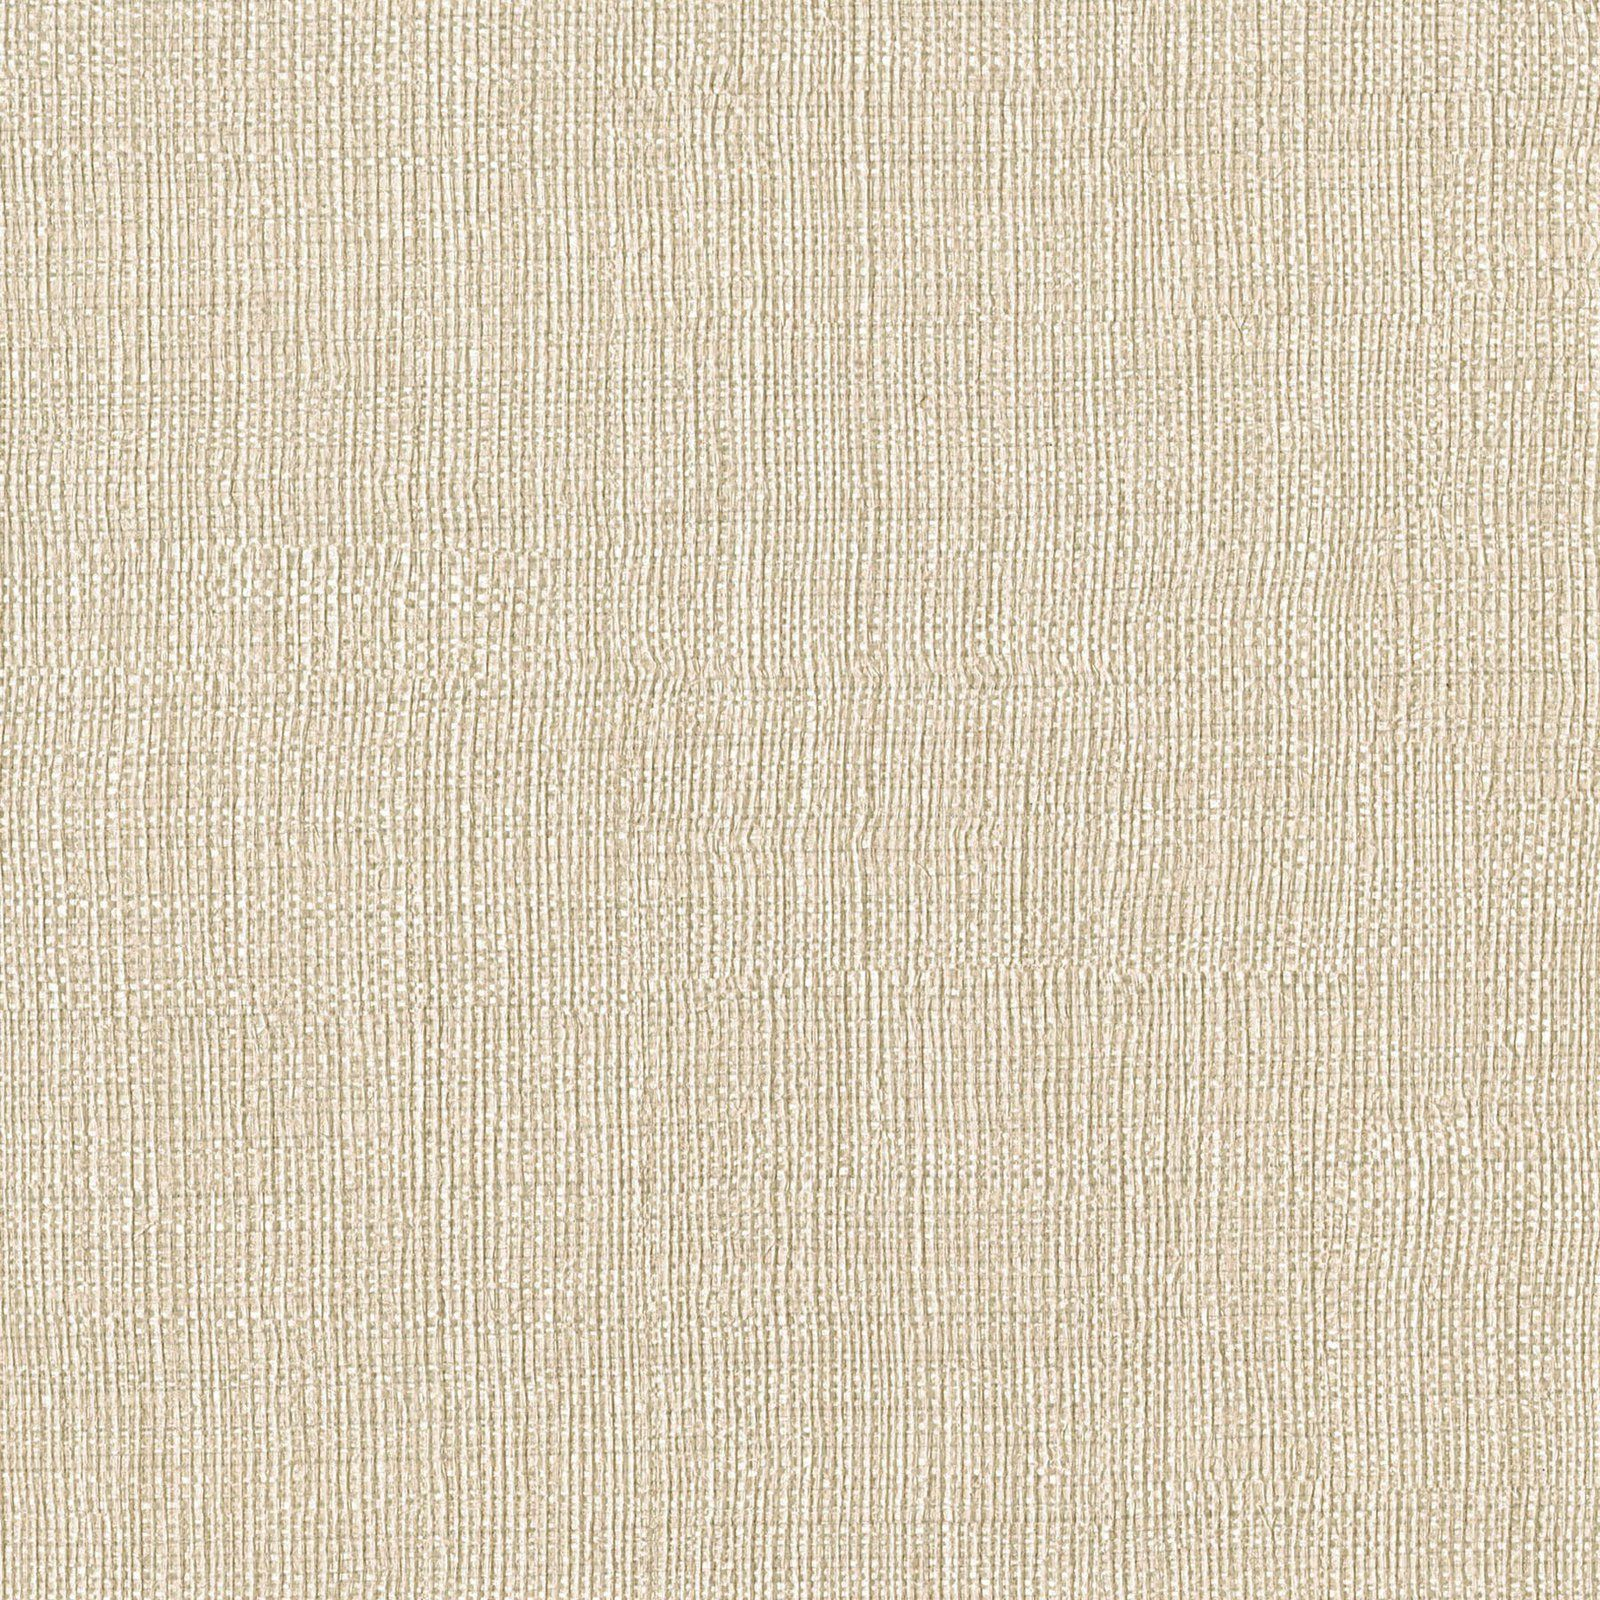 High Resolution Seamless Textures Plaster Texture Seamless Textures Casual Style Living Room